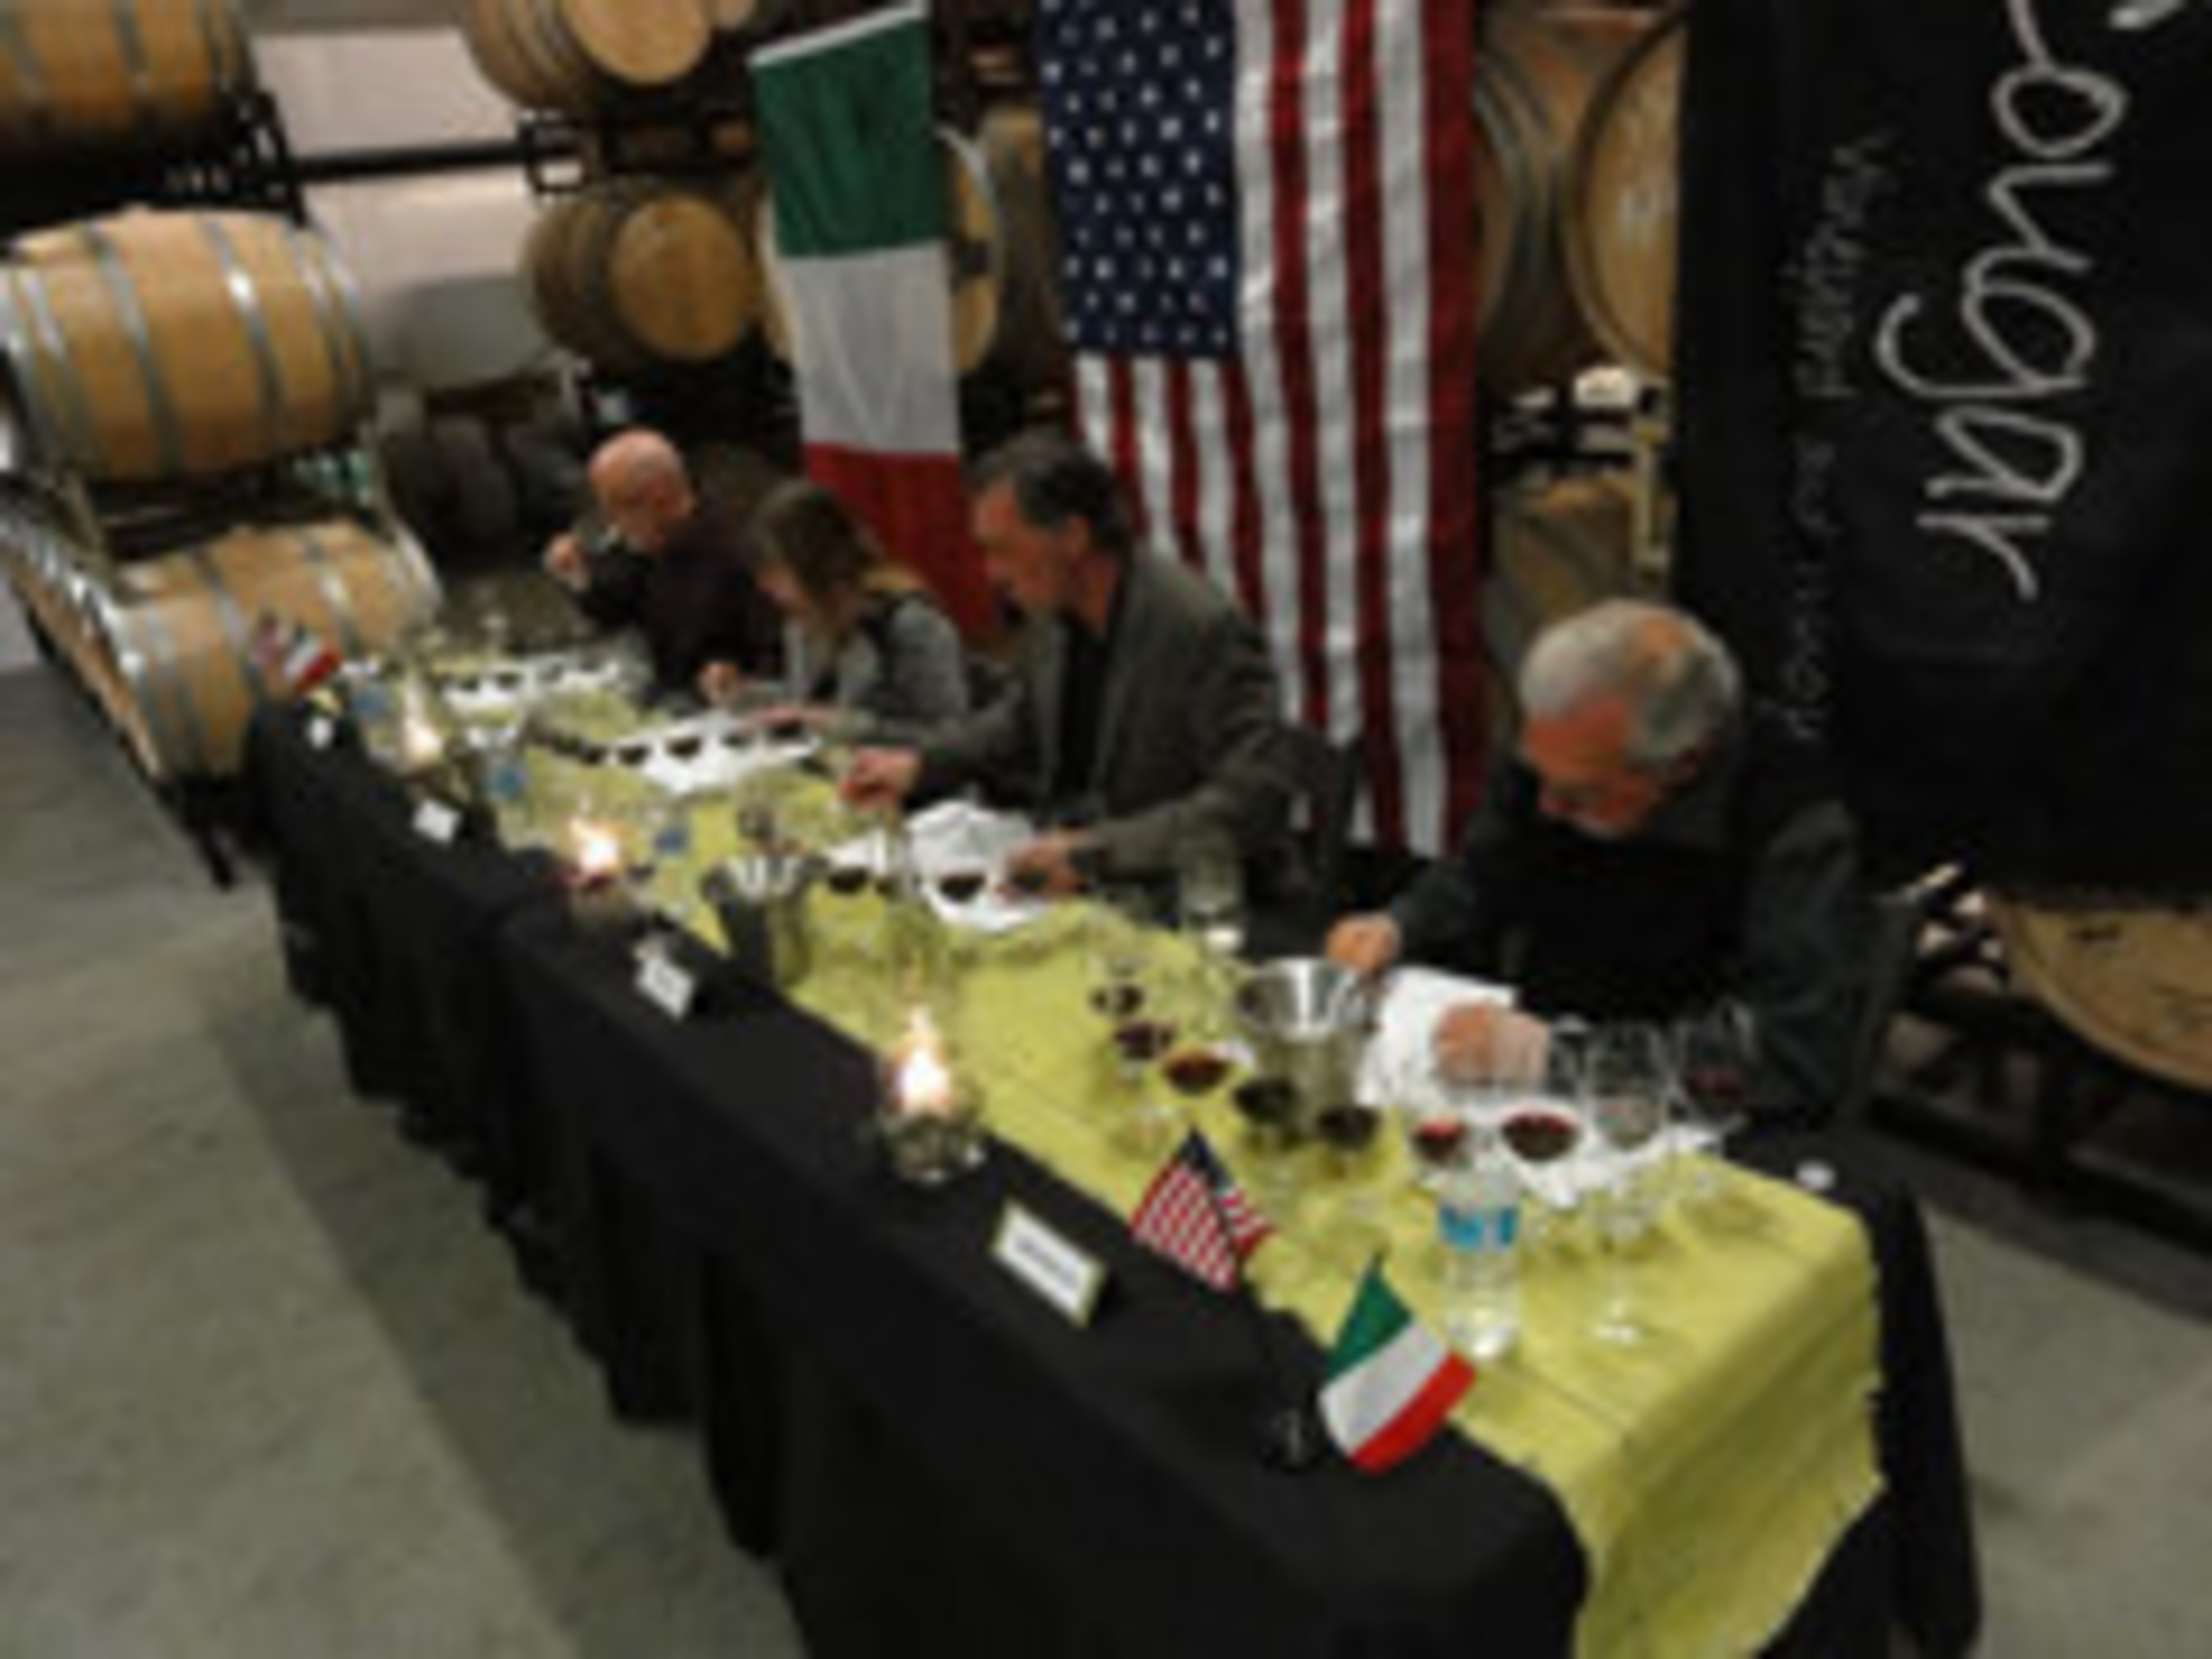 Cougar Vineyard and Winery Announces Results of Recent Wine Judging Event: 'Cougar Meets Italy'